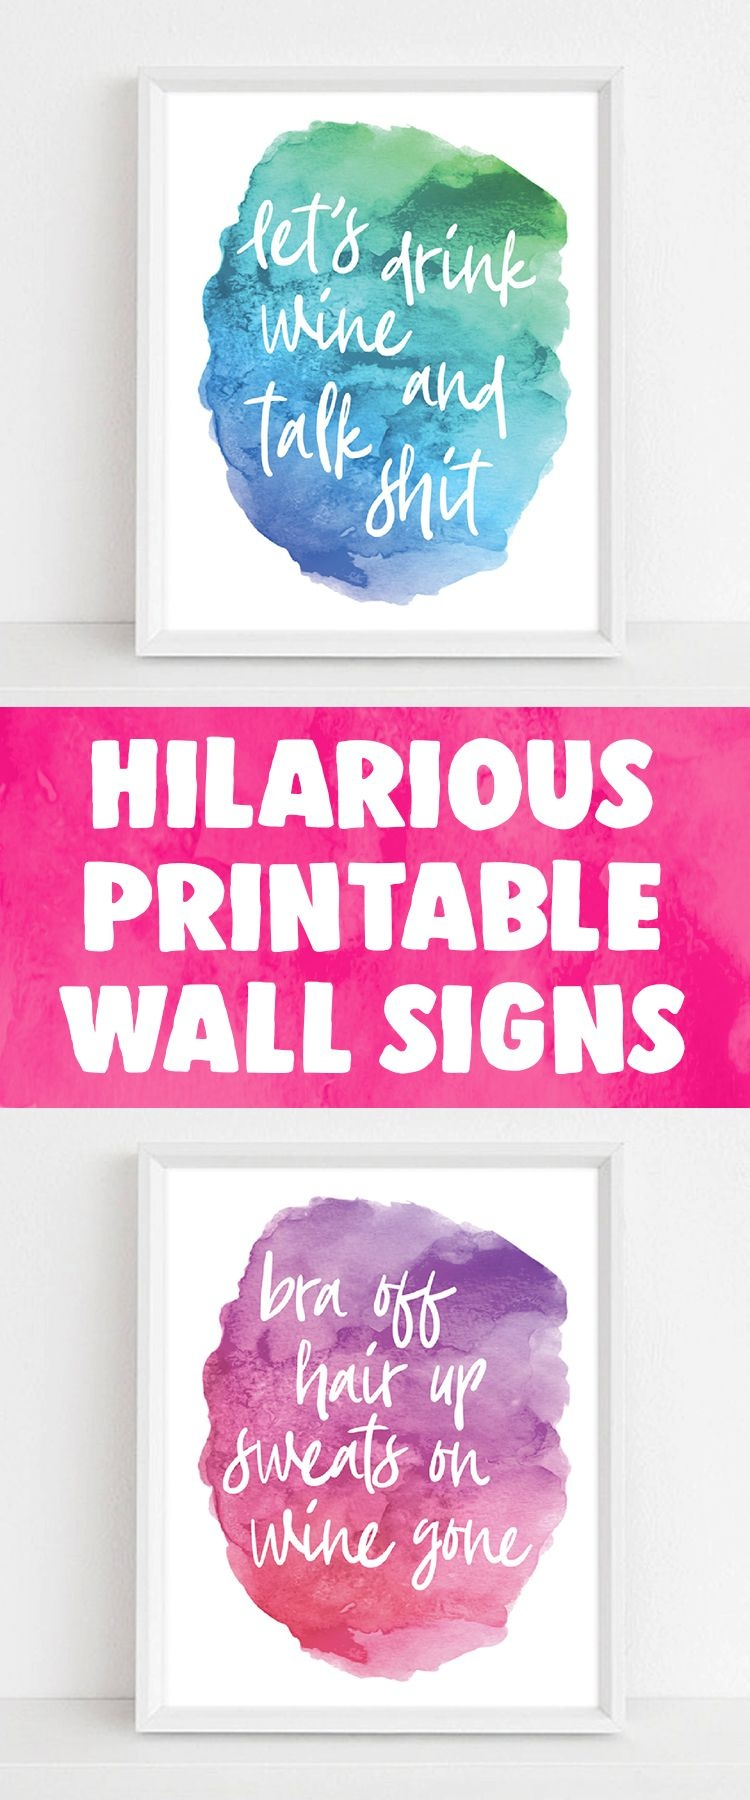 Printable Wall Art   Emerald And Mint Designs   Funny Home Decor - Free Printable Funny Signs